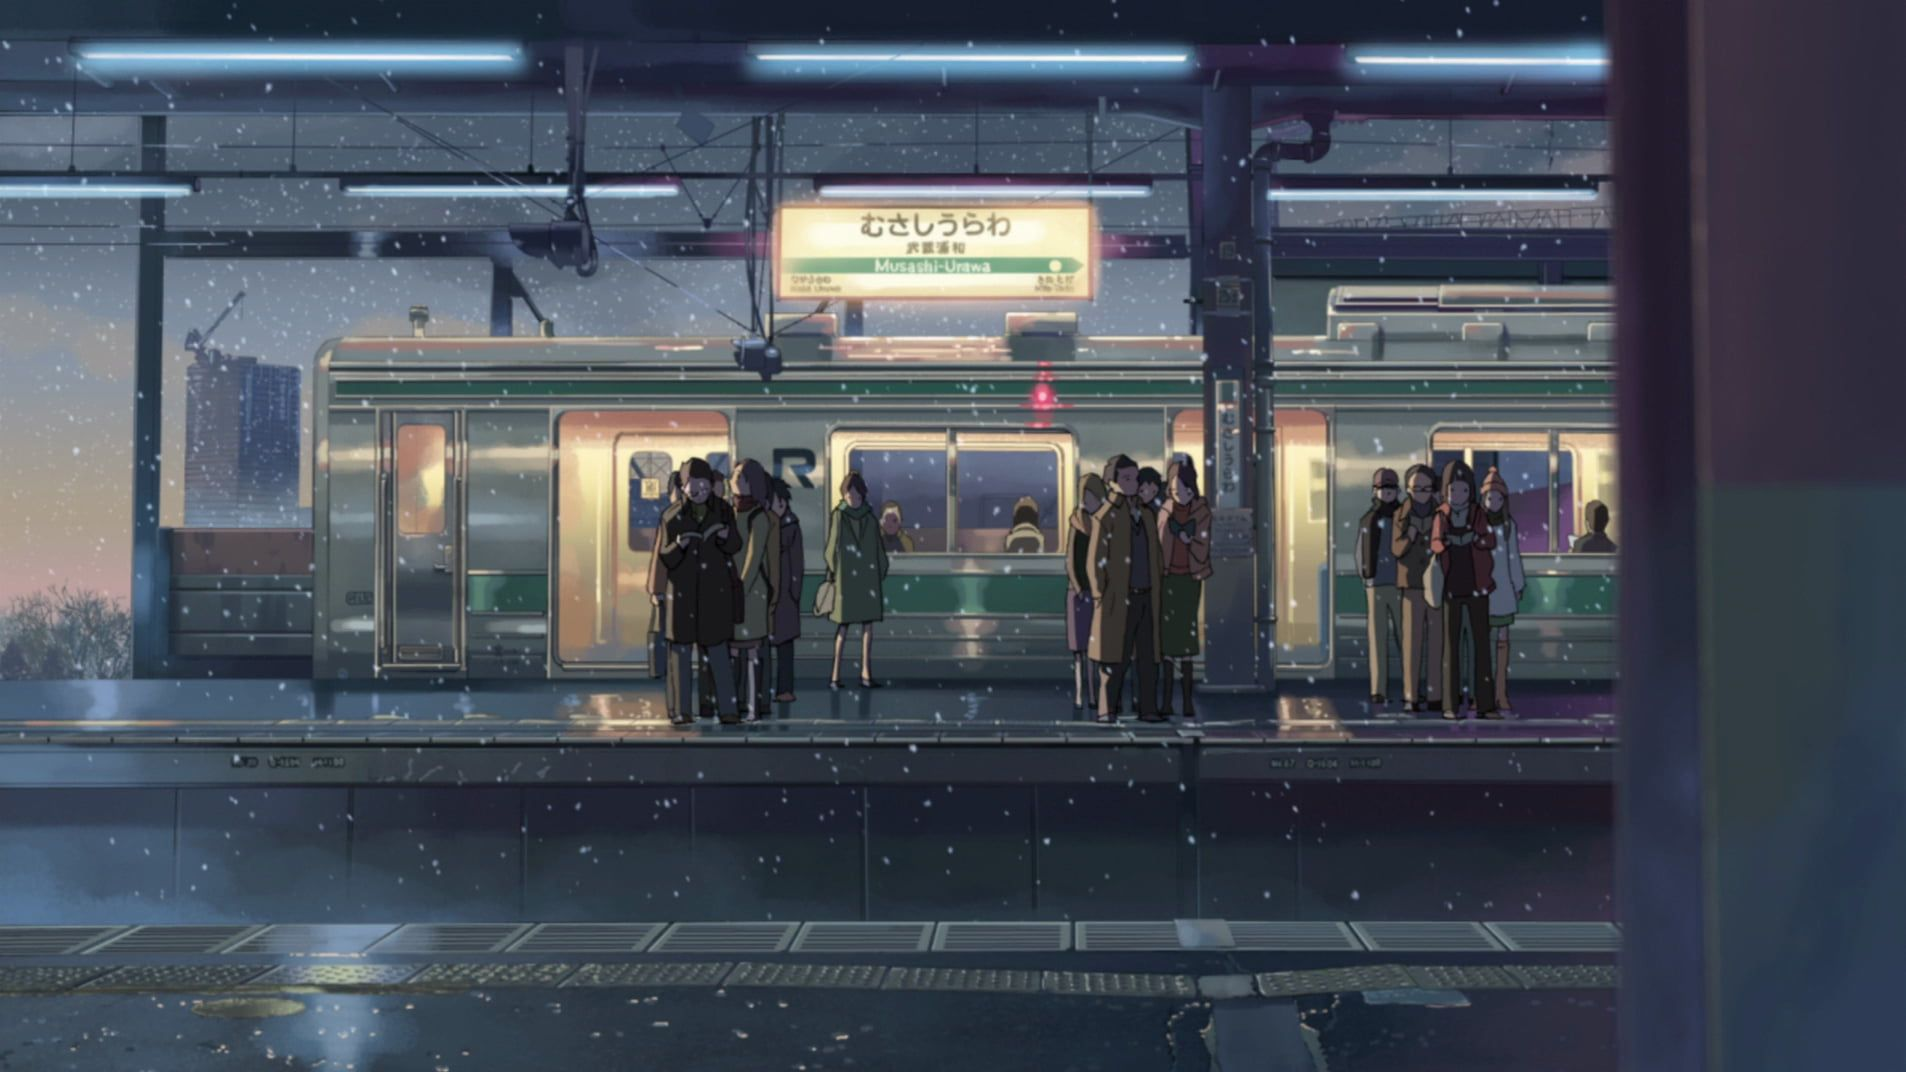 Image result for 5 centimeters per second store (With